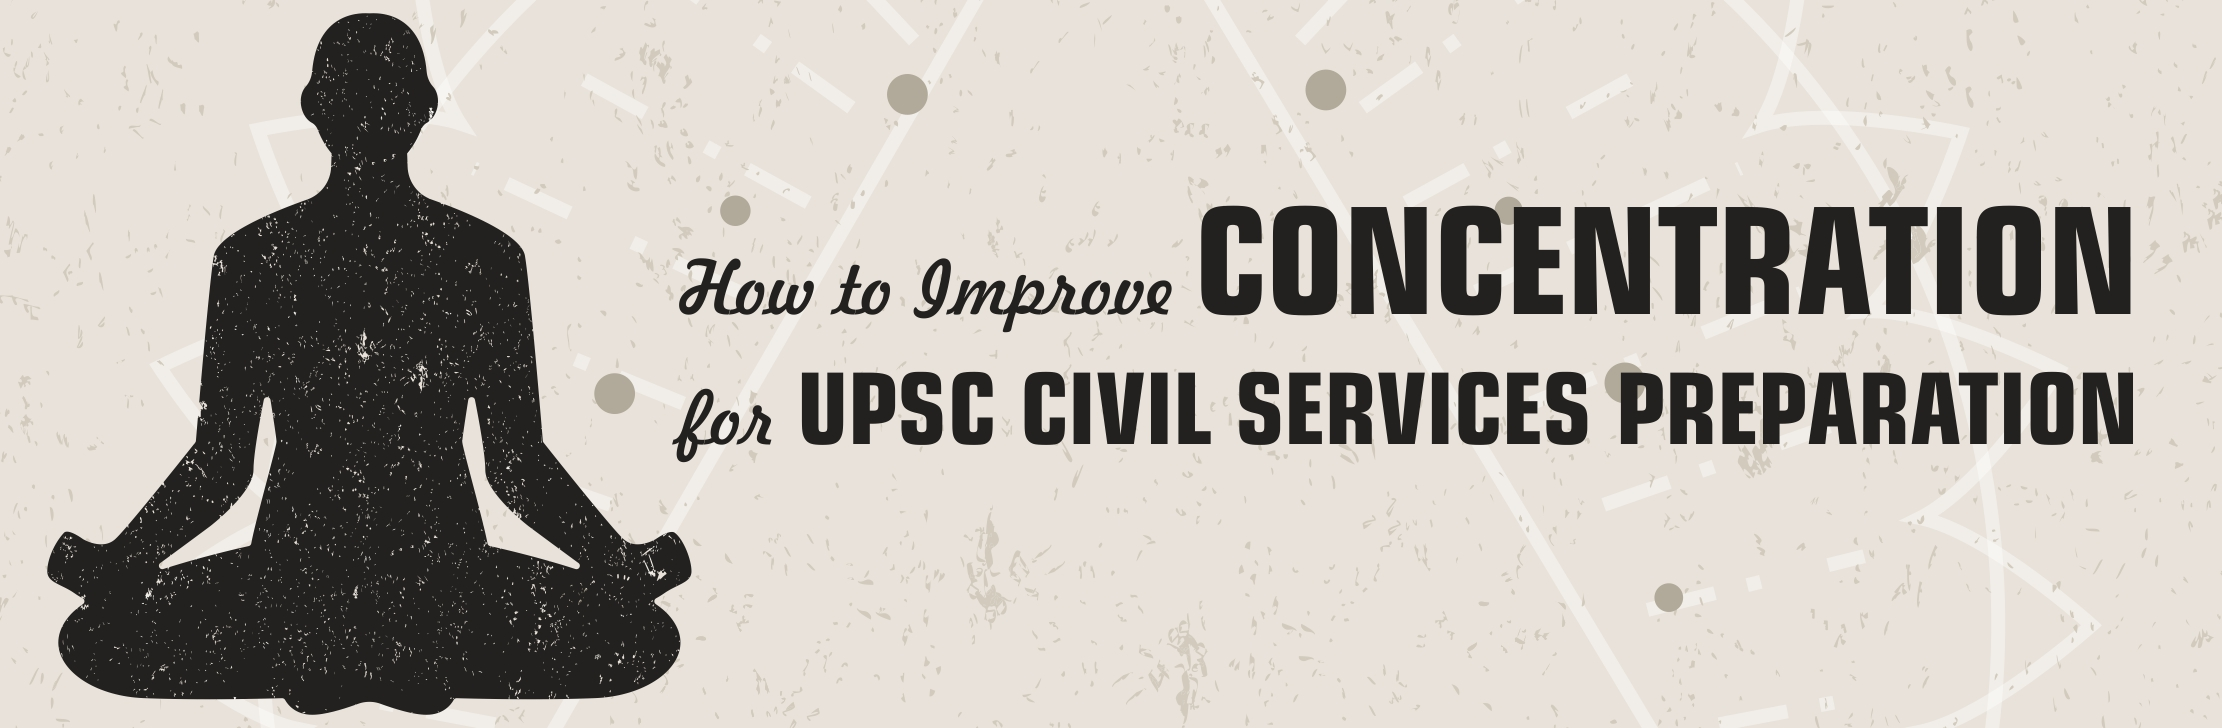 How to Improve Concentration for UPSC Civil Services Preparation